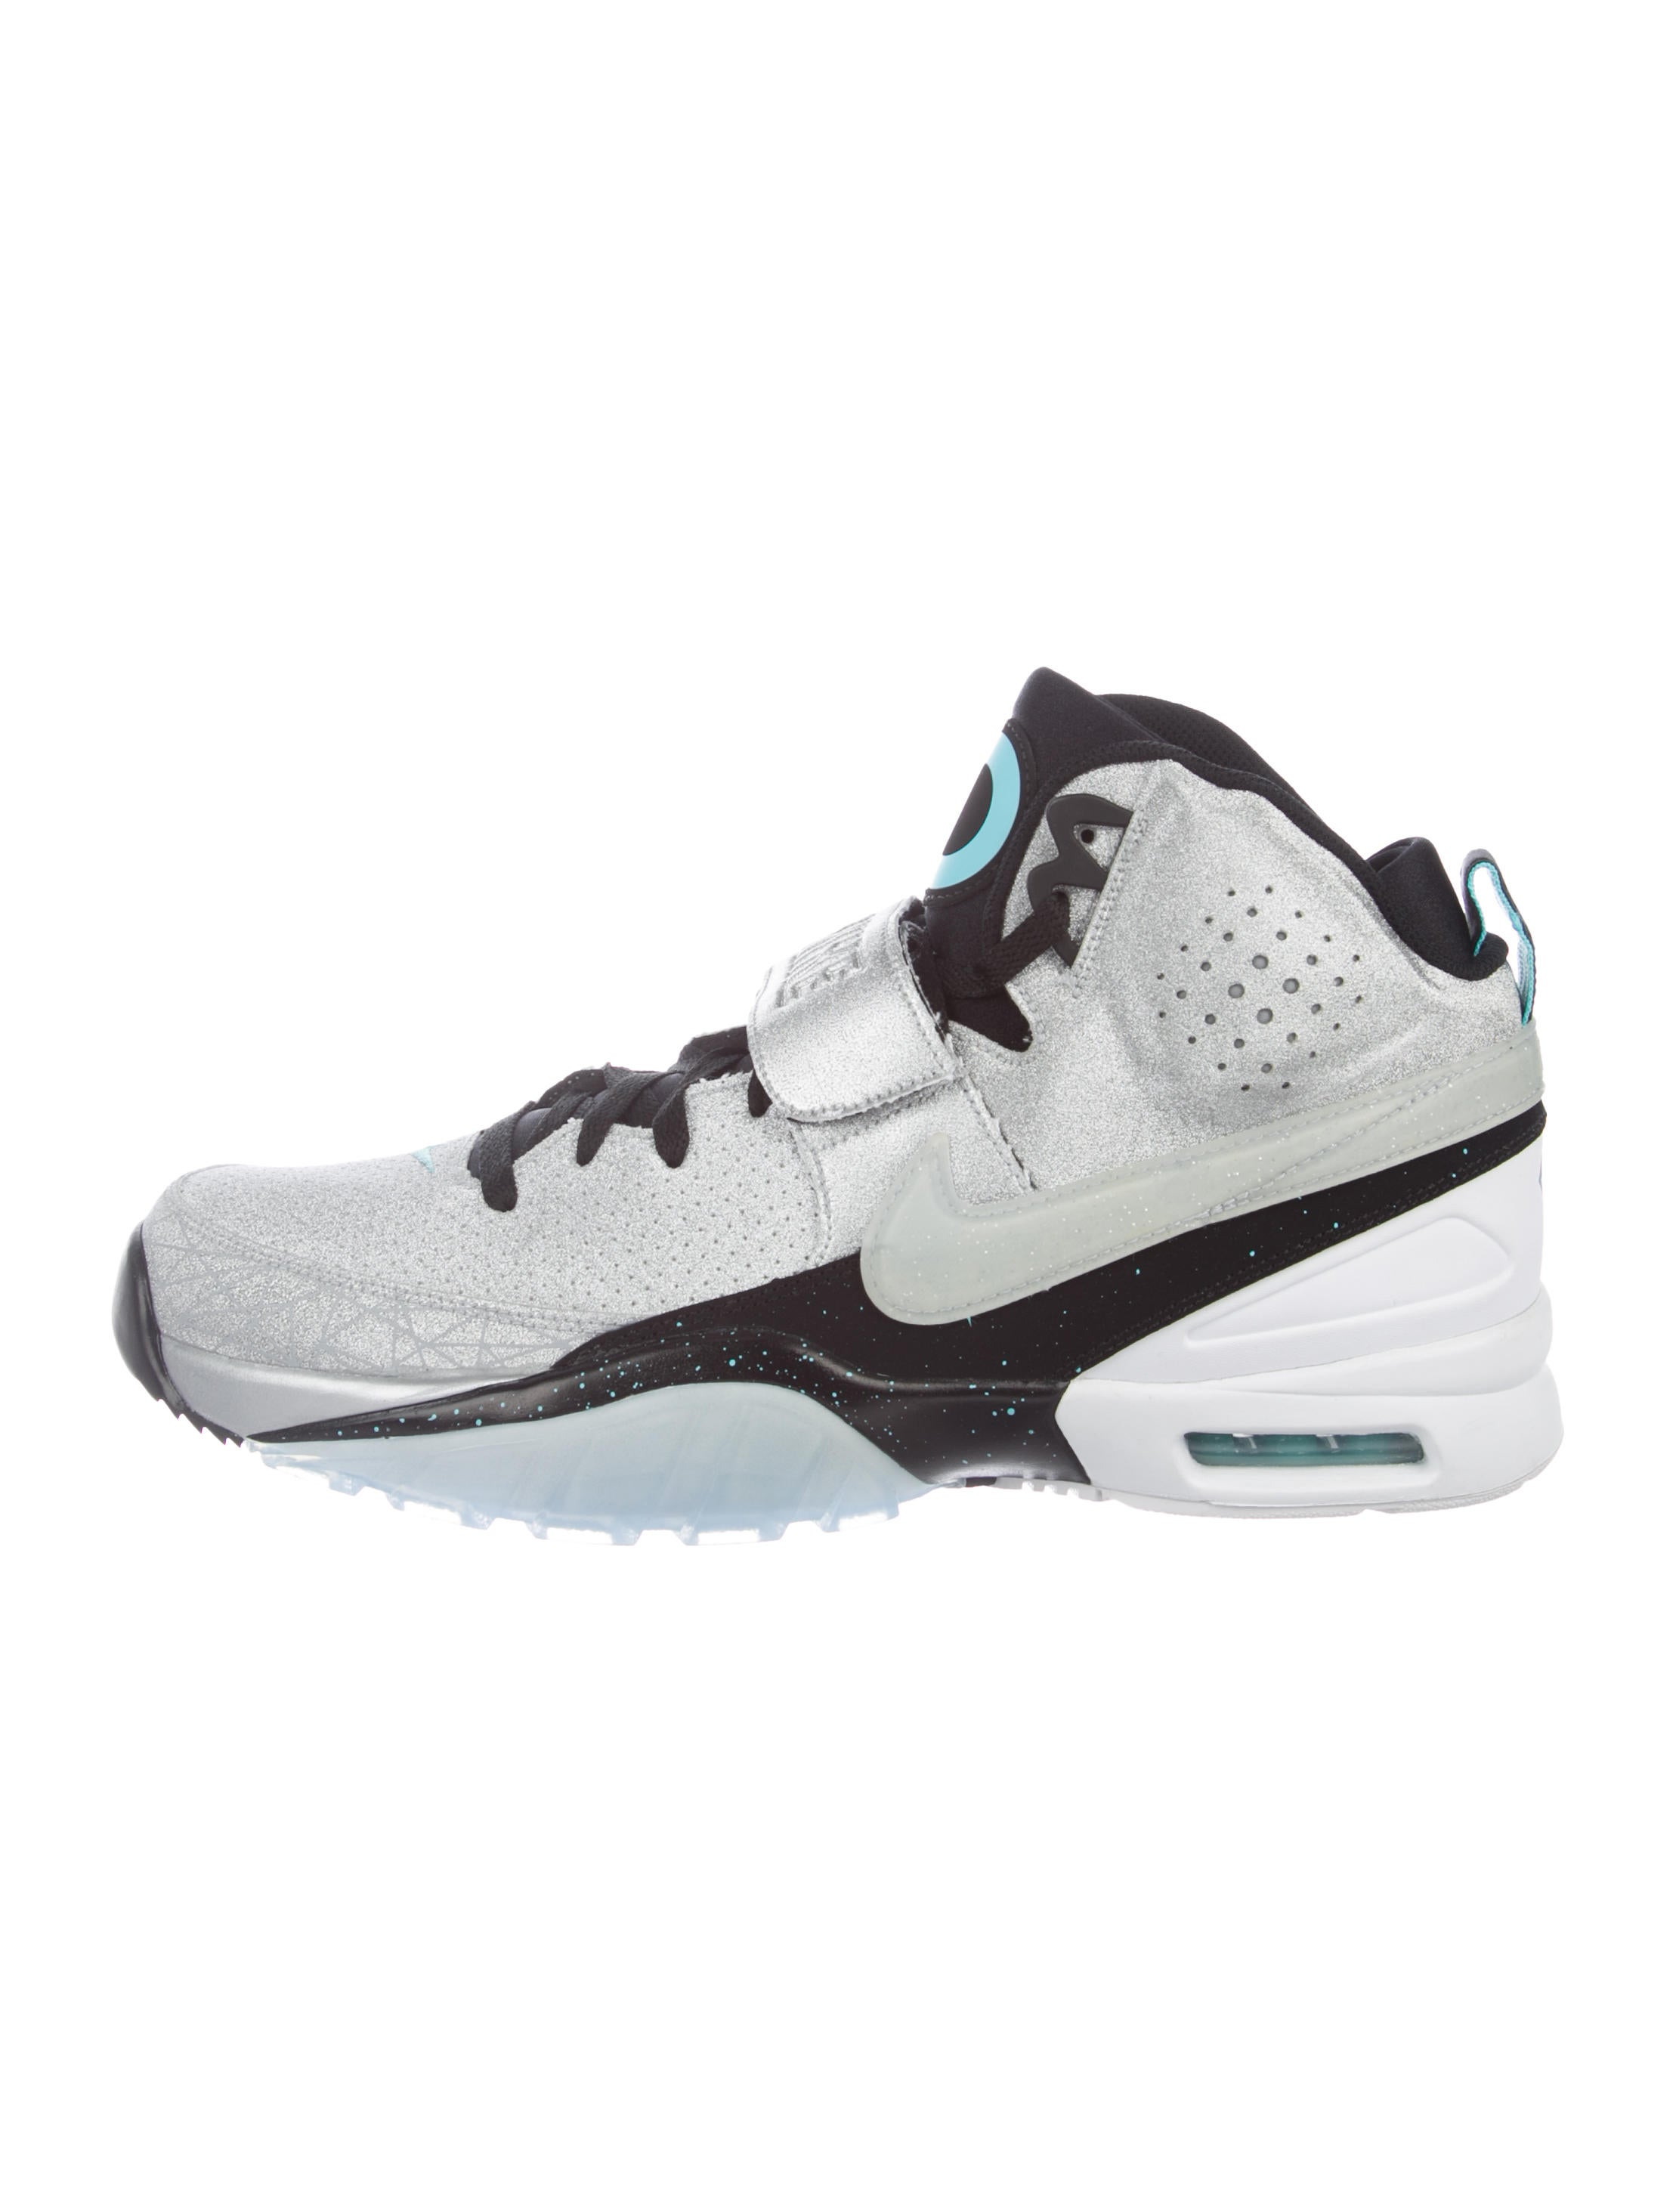 596f41fbbff0 Nike Air BO 1 PRM Diamond Quest Sneakers w  Tags - Shoes - WU226438 ...